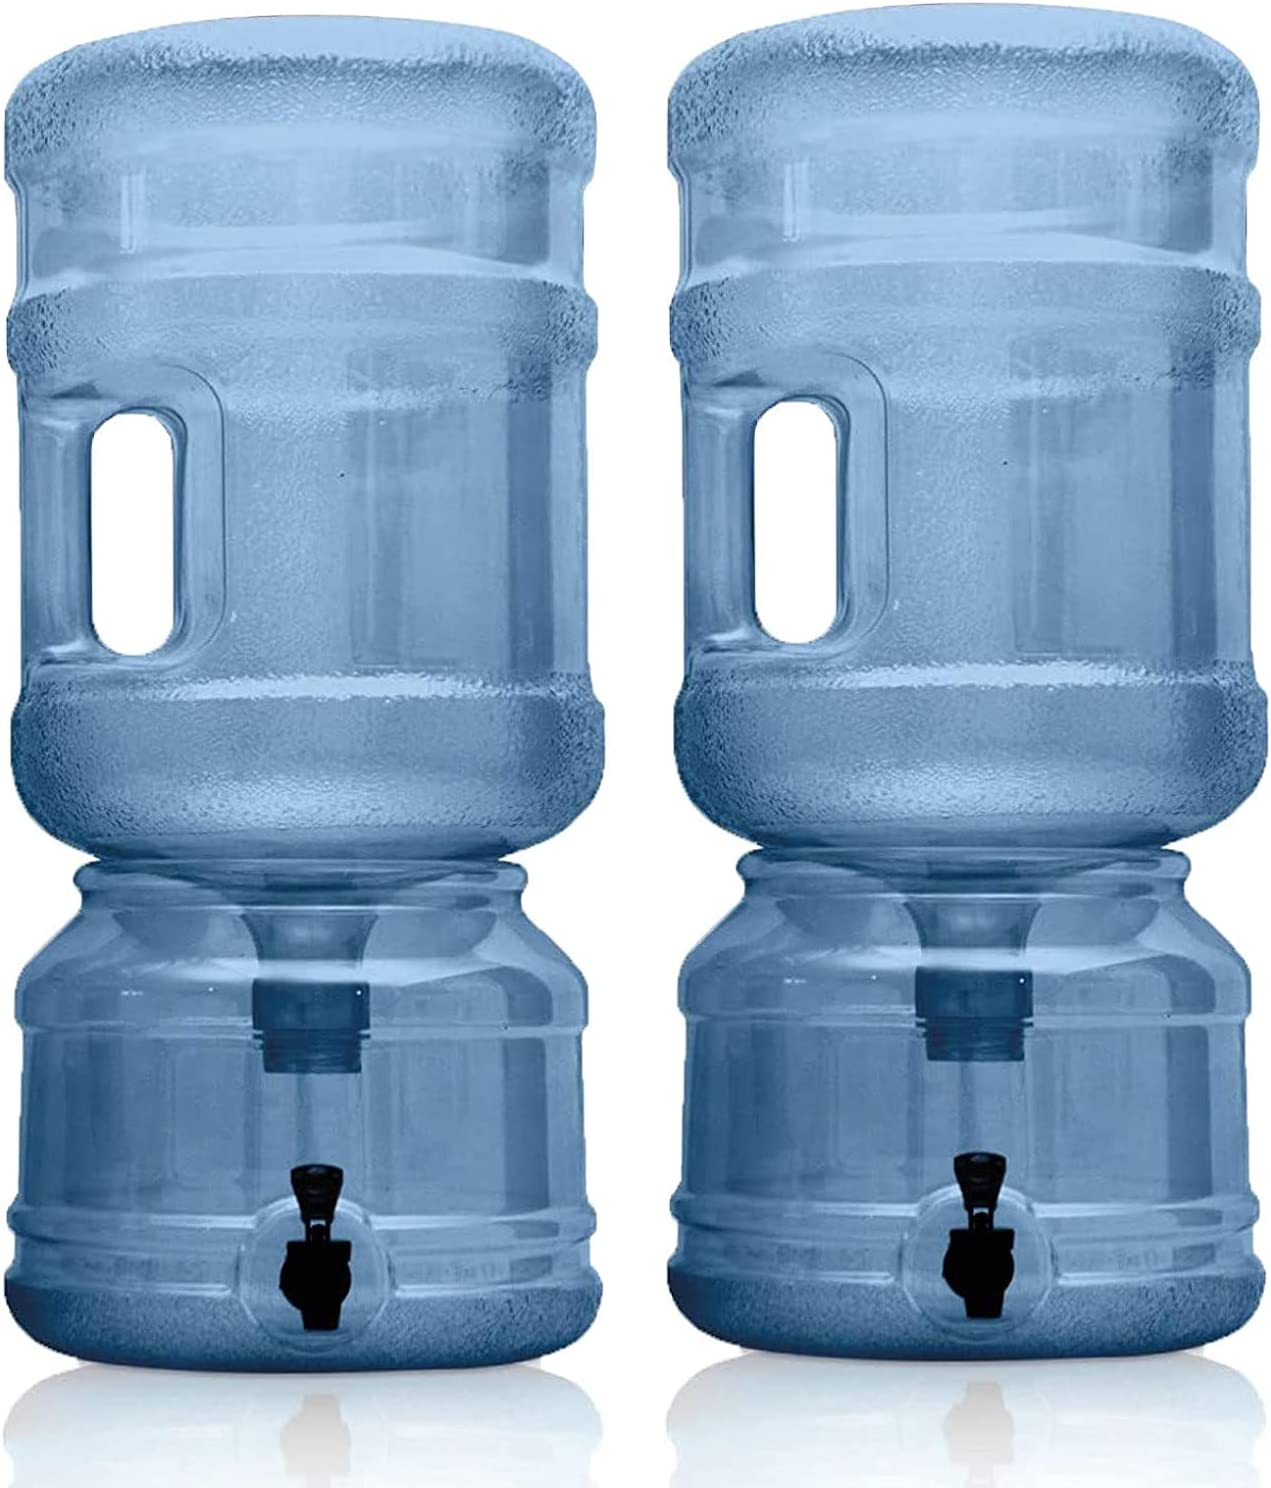 Set of 2 - BPA FREE Water Dispenser Base with Spigot & 5 Gallon Water Jug Set - Transparent Blue - For Countertops or Stands - 2 Complete Sets